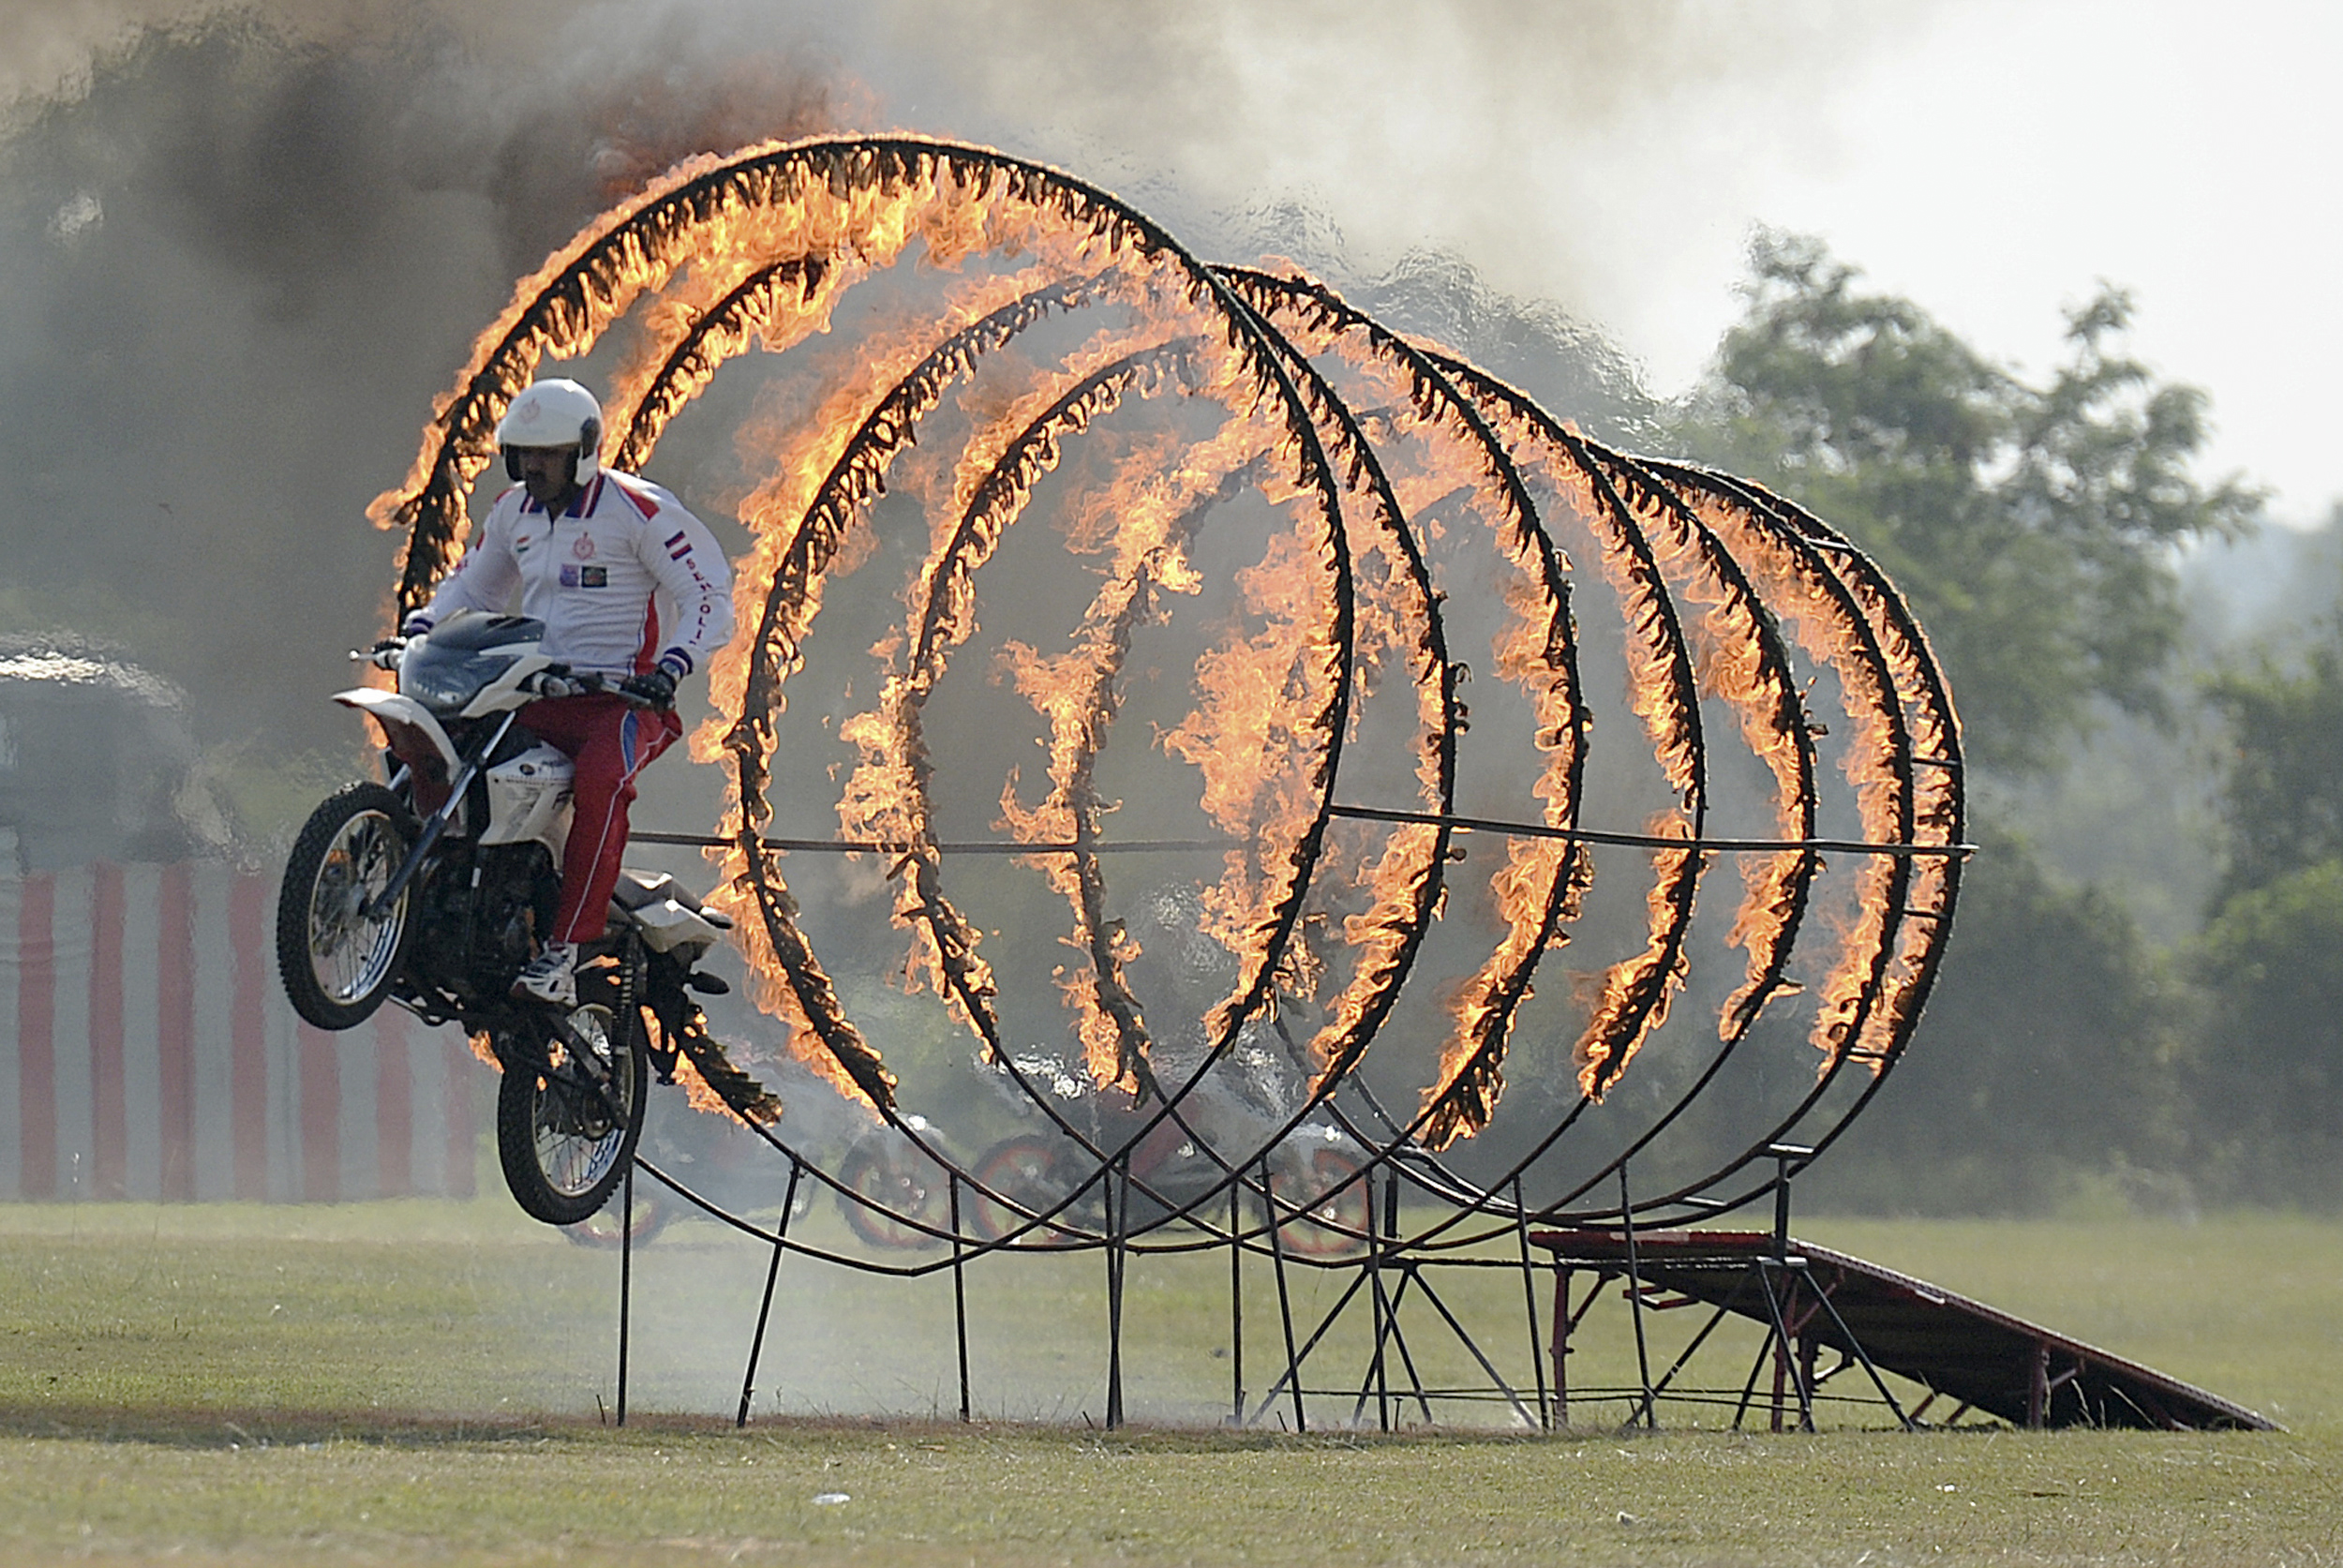 An Indian army soldier, a member of the motorcycle display team, performs a stunt during a display at an officer training academy in Chennai on September 7, 2018. (ARUN SANKAR/AFP/Getty Images)